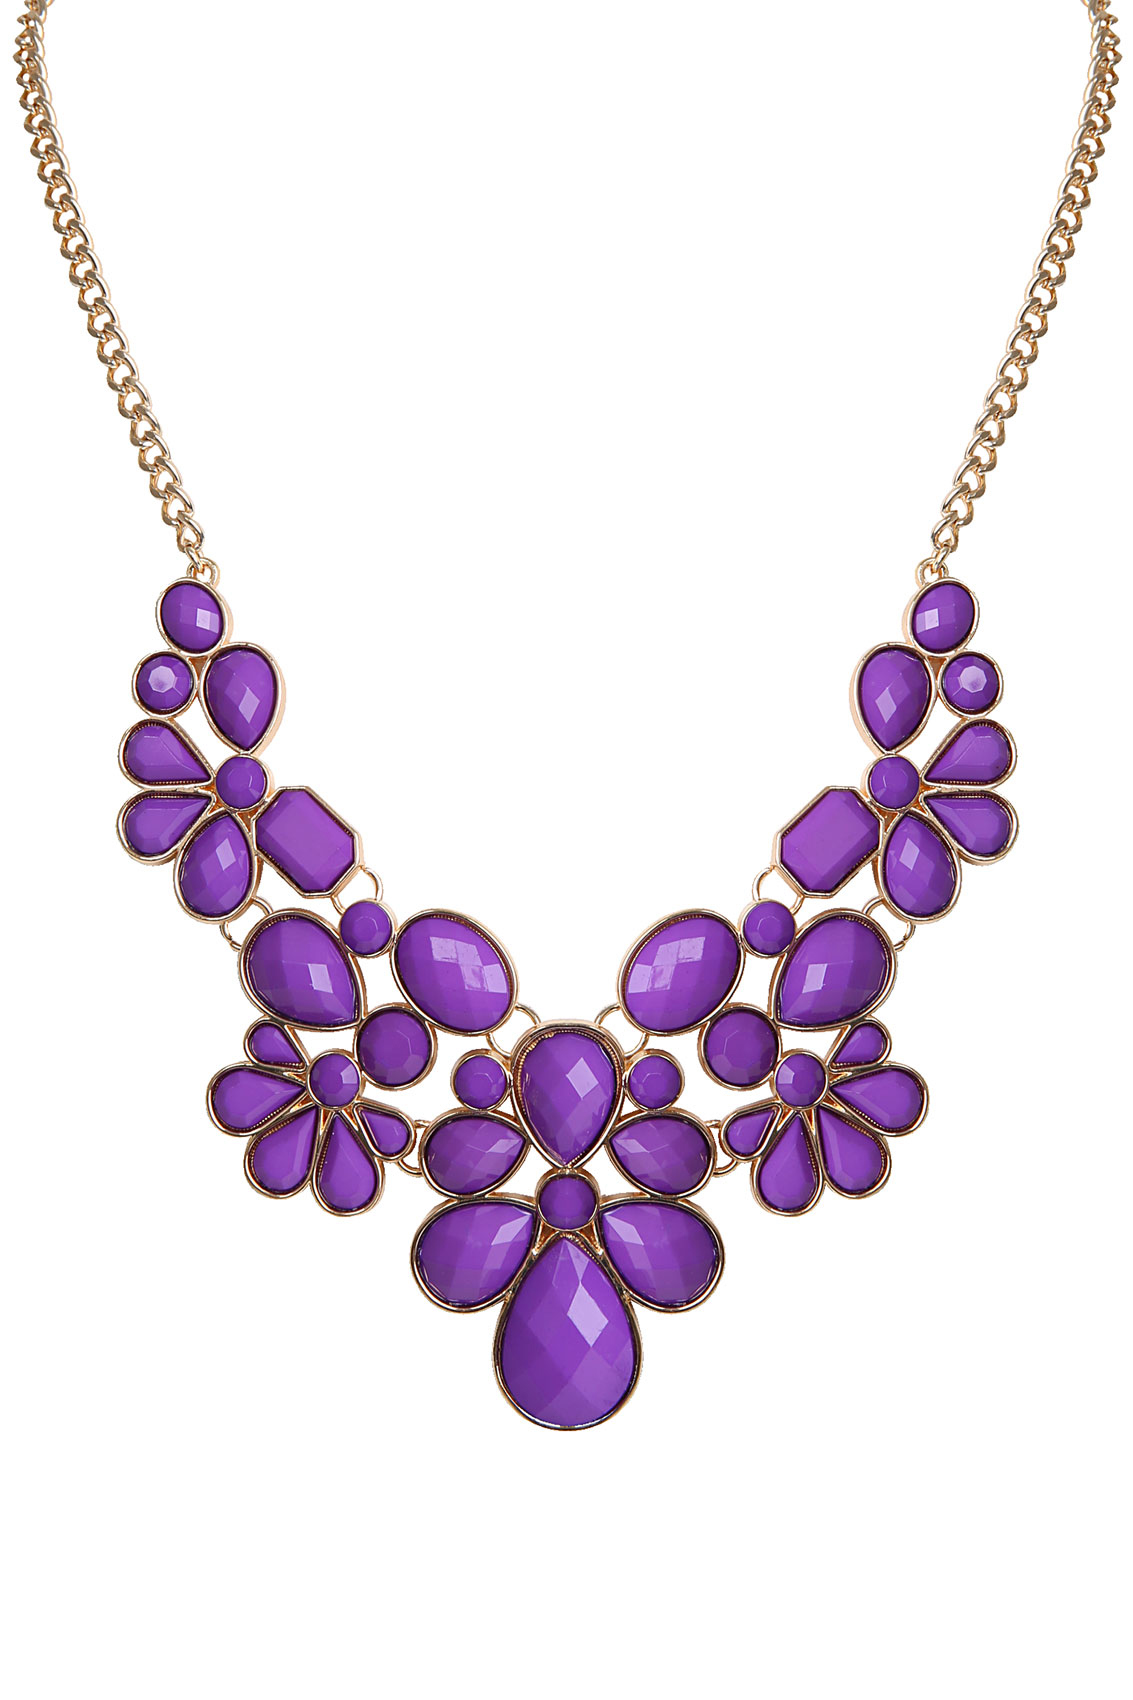 You searched for: purple statement necklace! Etsy is the home to thousands of handmade, vintage, and one-of-a-kind products and gifts related to your search. No matter what you're looking for or where you are in the world, our global marketplace of sellers can help you find unique and affordable options. Let's get started!